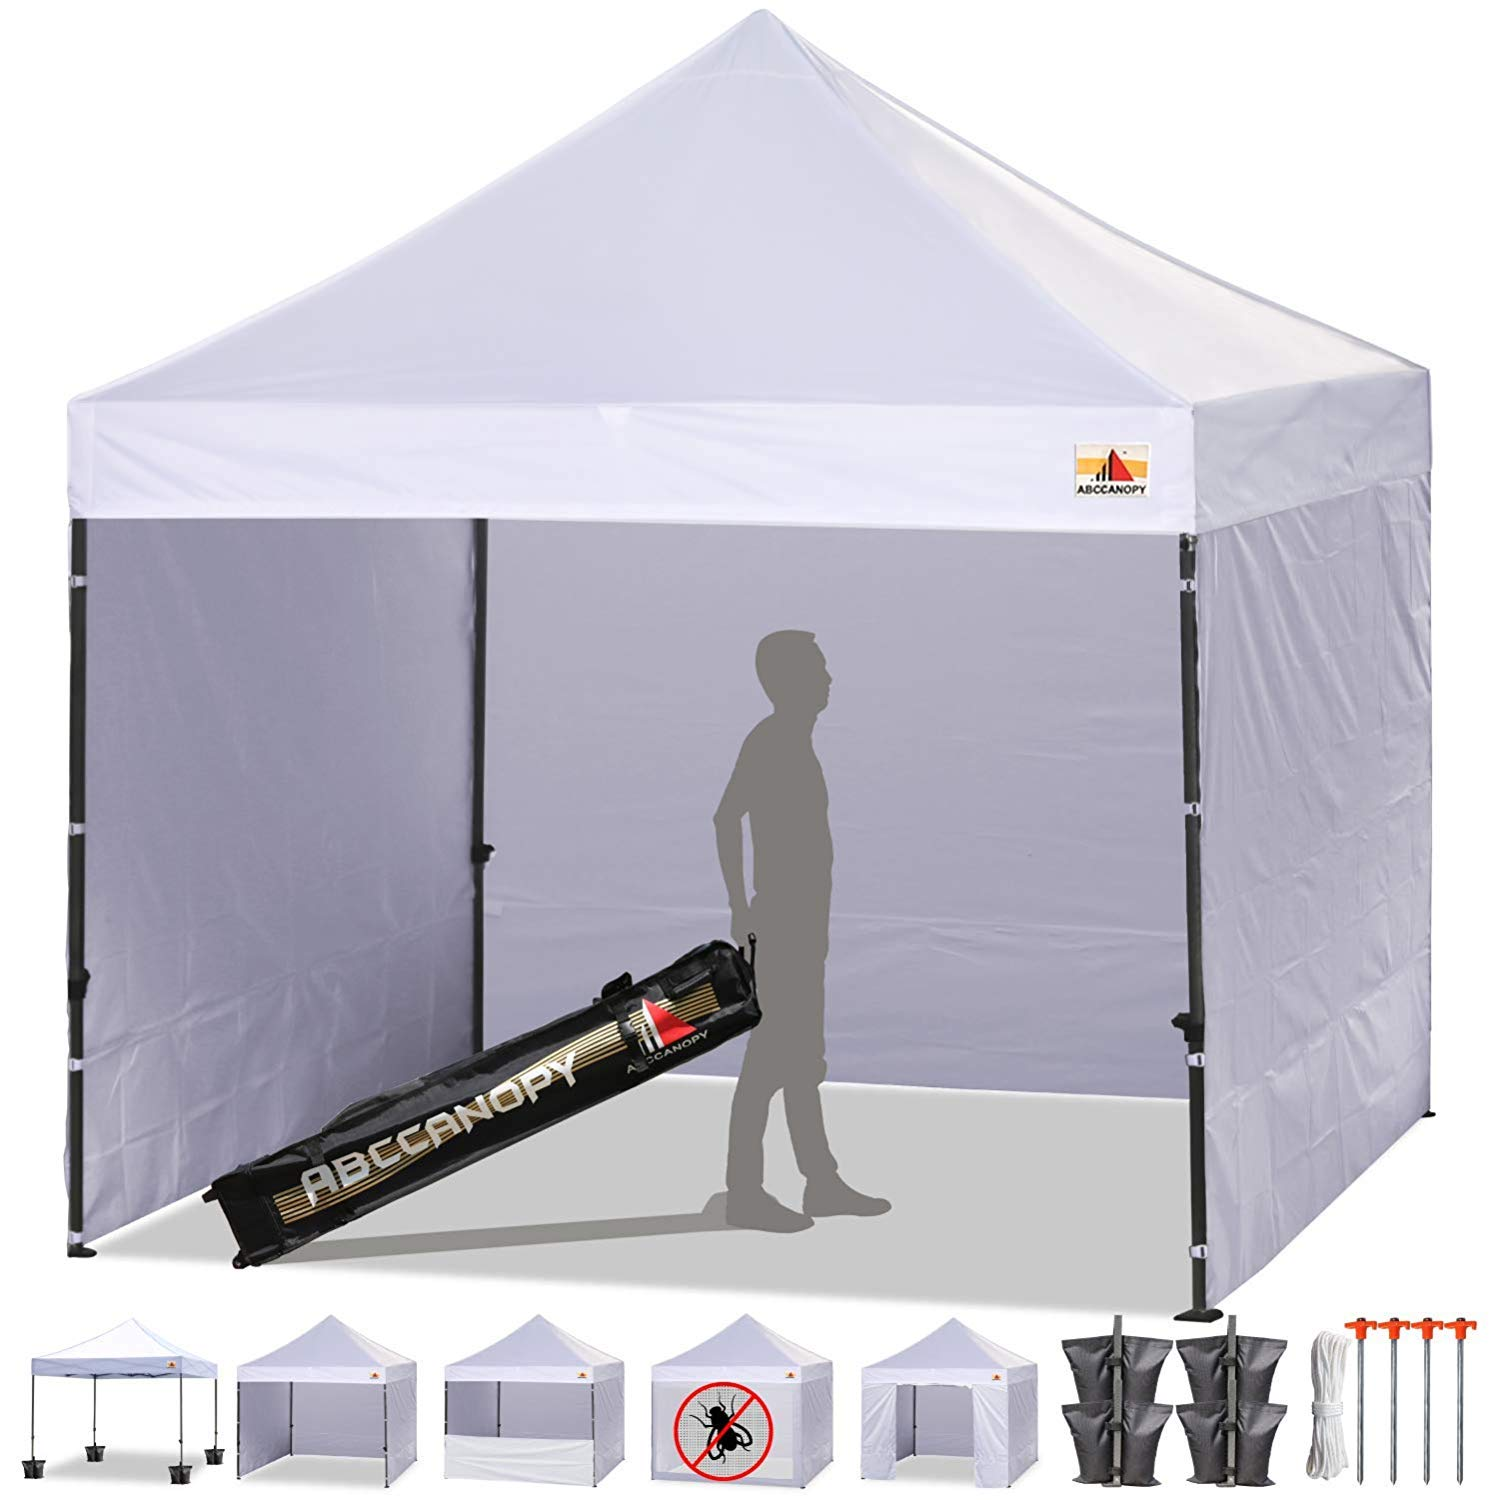 ABCCANOPY Canopy Tent Pop Up 10×10 Commercial Tents with Sides Outdoor Canopy Pop-up Bonus 6 Side Walls, Including Door Wall, Half Wall and Mesh Wall, Upgrade Roller Bag, White